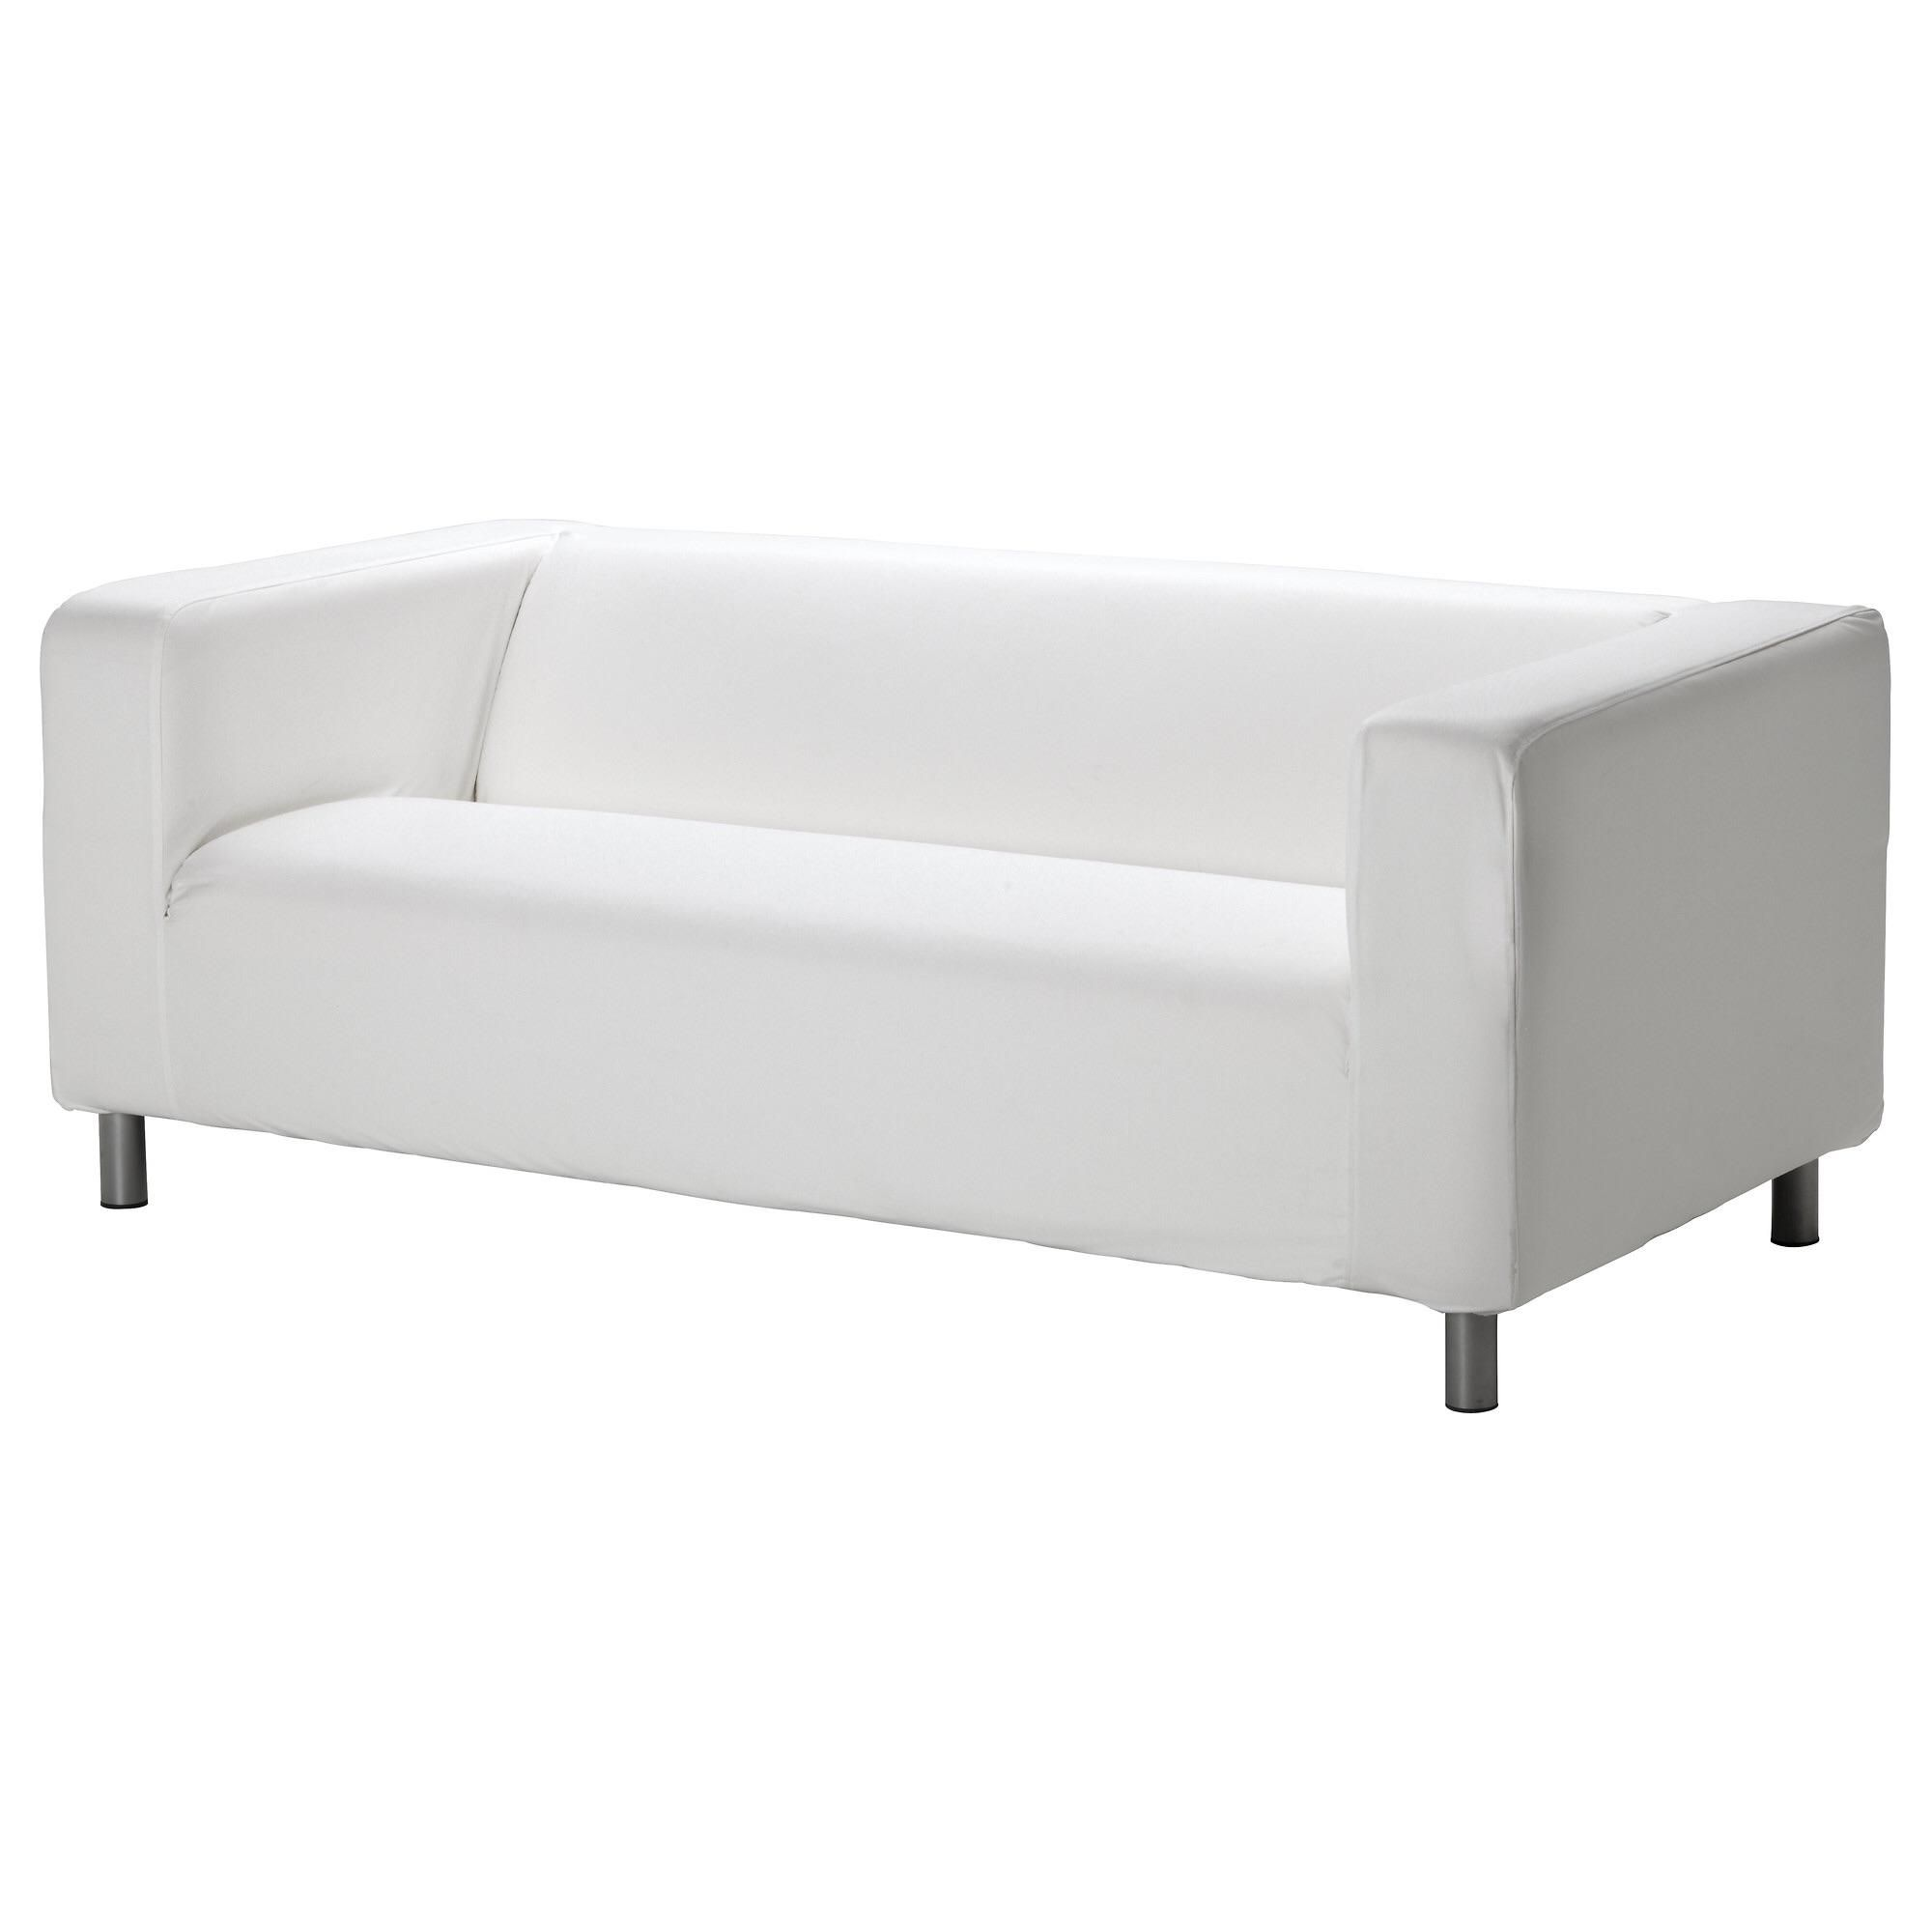 Ikea Ledersofa Ebay Kleinanzeigen Two Free Ikea Sofas Going If Anyone Wants Them Pick Up Only